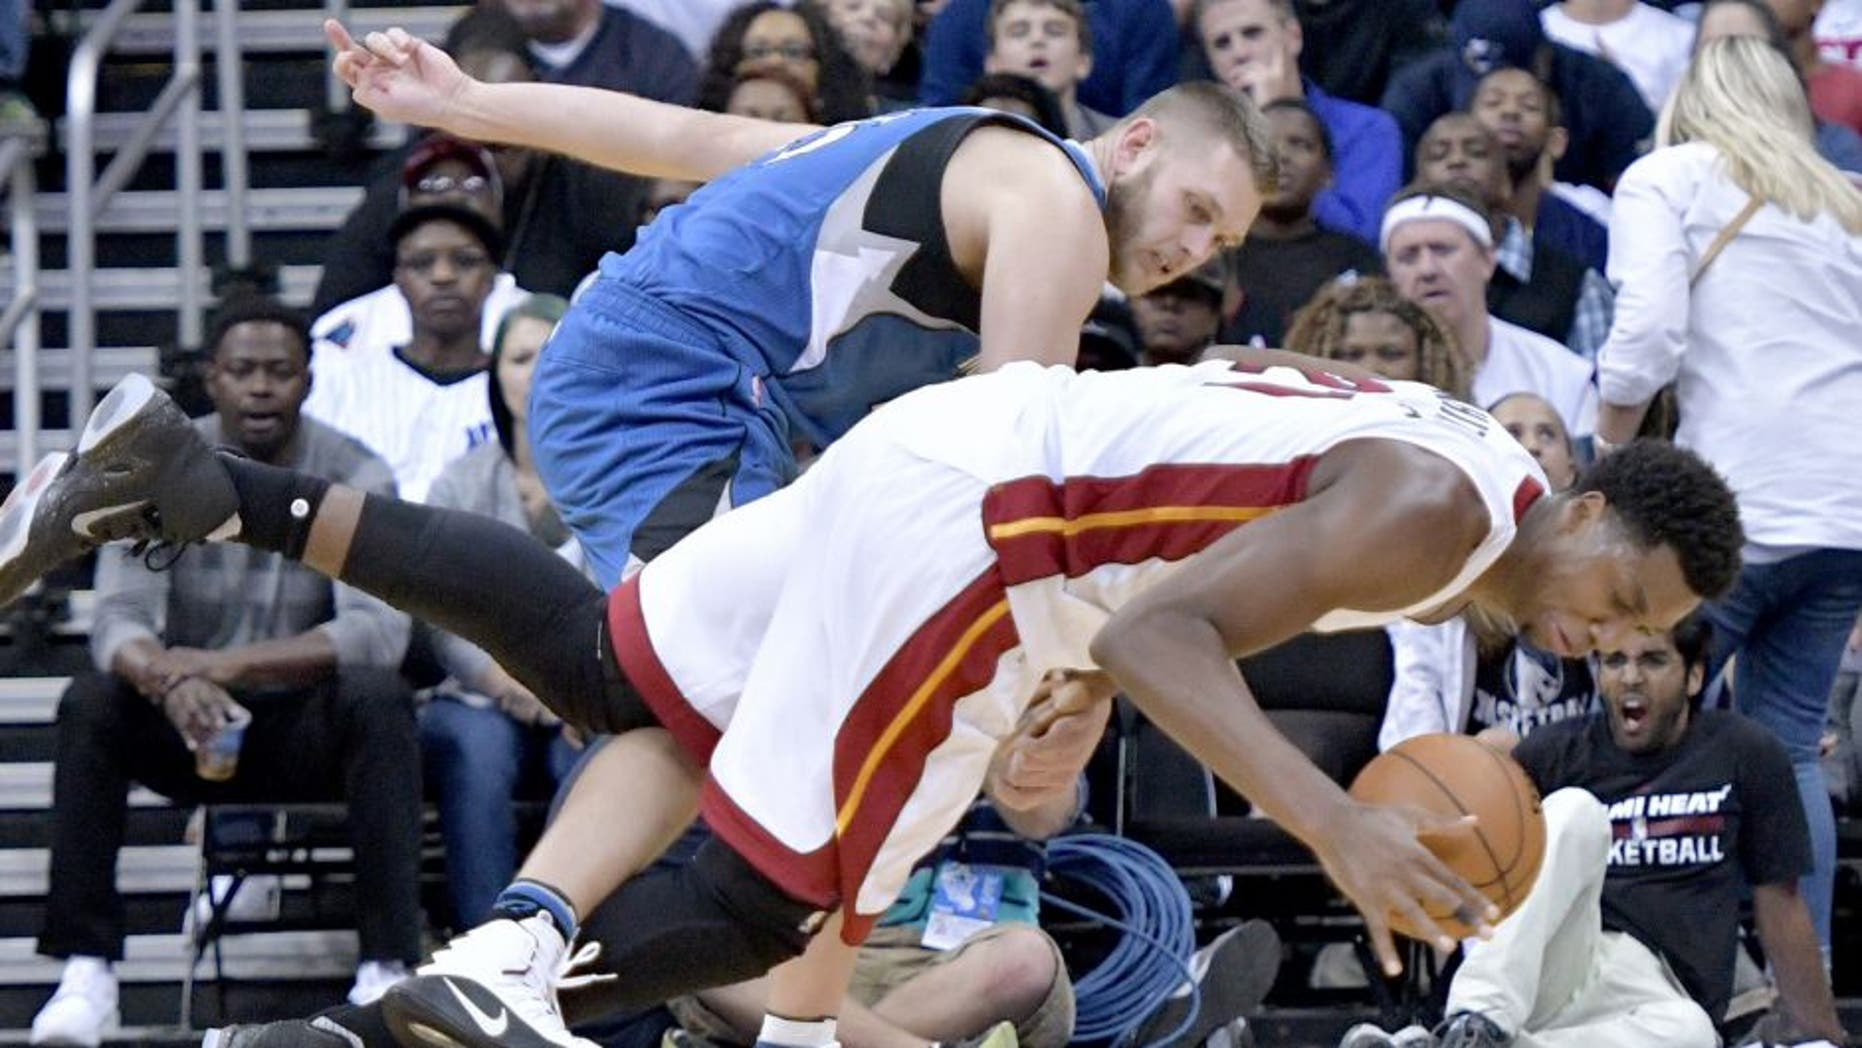 Oct 8, 2016; Kansas City , MO, USA; Miami Heat center Hassan Whiteside (21) and Minnesota Timberwolves center Cole Aldrich (45) fight for the ball during the second half at Sprint Center. Minnesota won 109 - 100. Mandatory Credit: Denny Medley-USA TODAY Sports